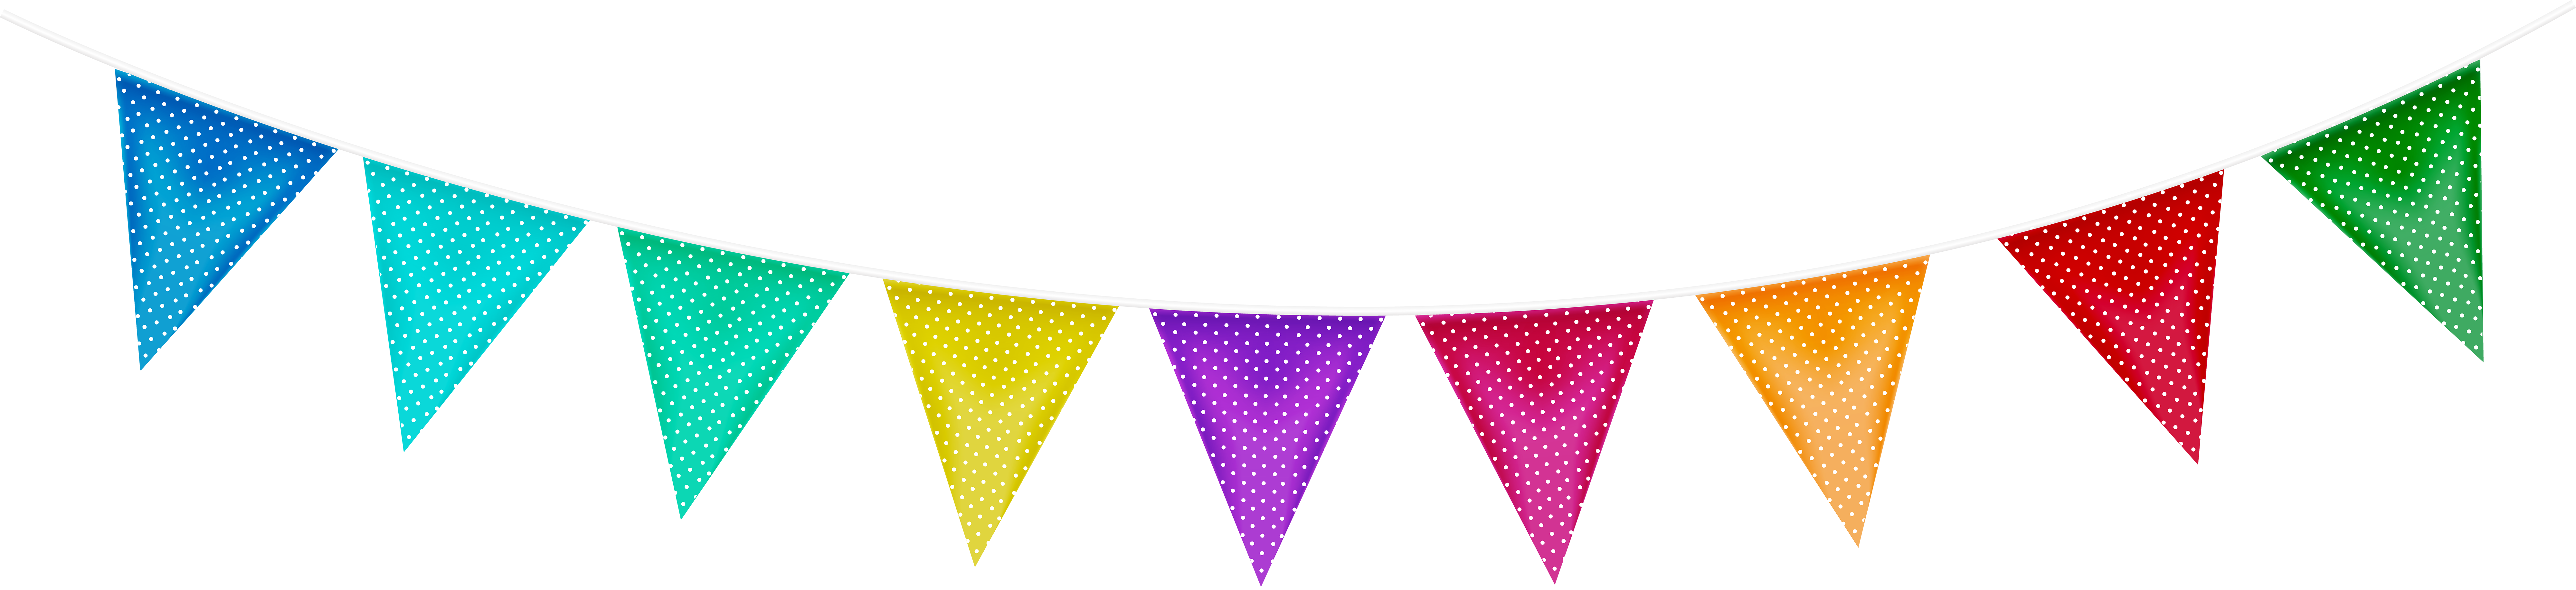 Streamer png clip art. Streamers clipart deco